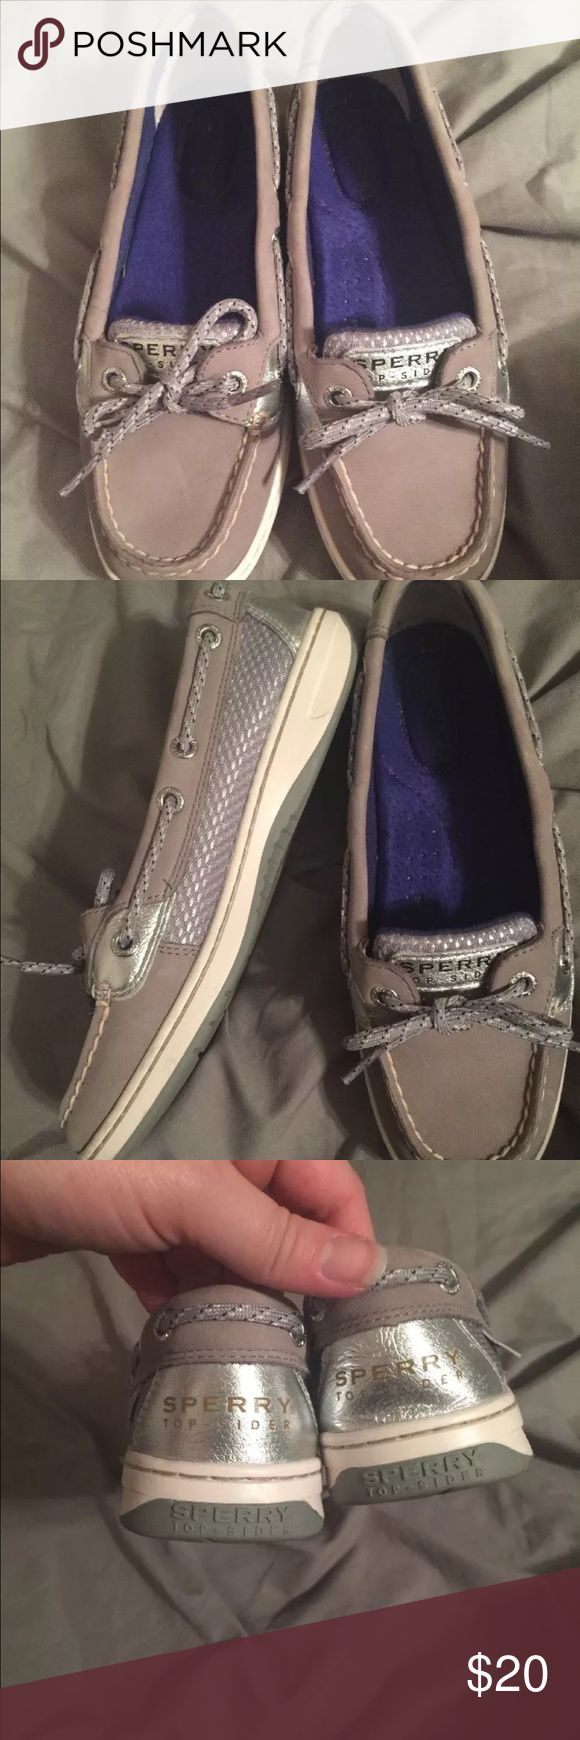 Sperry Angelfish 5.5 Worn once, like new sperry. Silver and shiny. Very small mark on top of one shoe (see pic). Not noticeable at all. Sperry Top-Sider Shoes Flats & Loafers